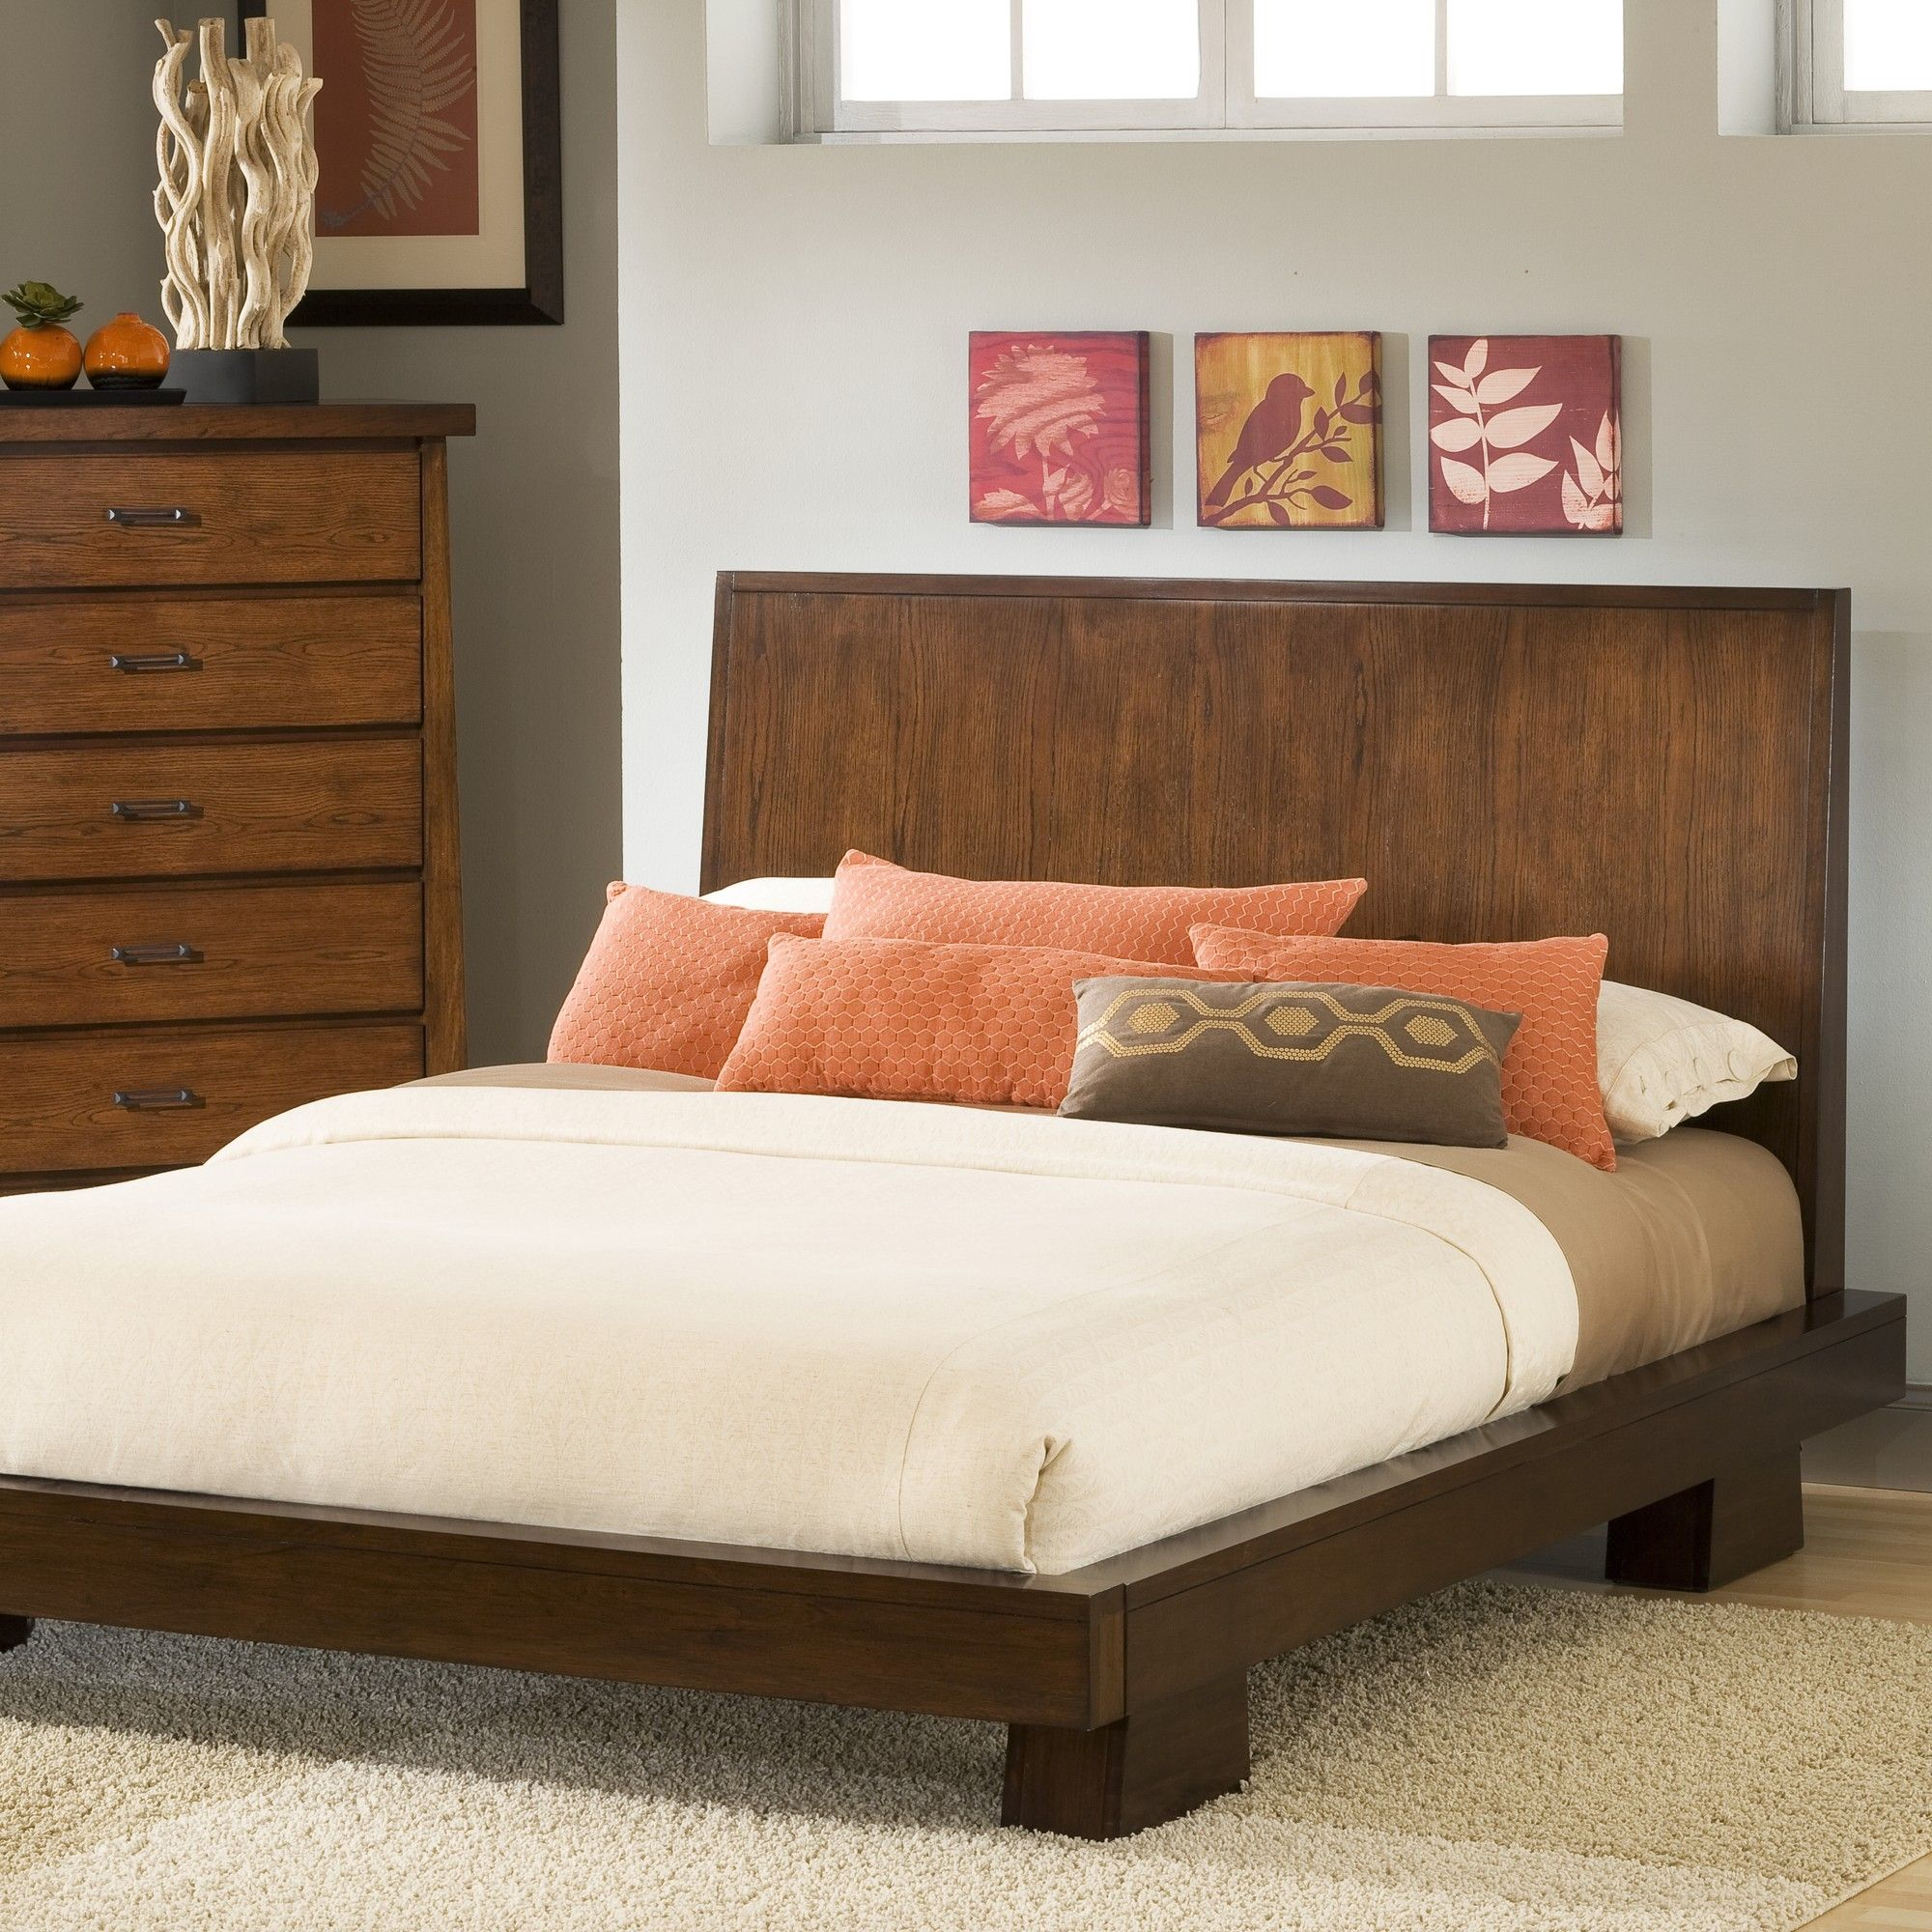 for bed good uncategorized frame grain furniture reviews size of wood within queen loft full platform wayfair